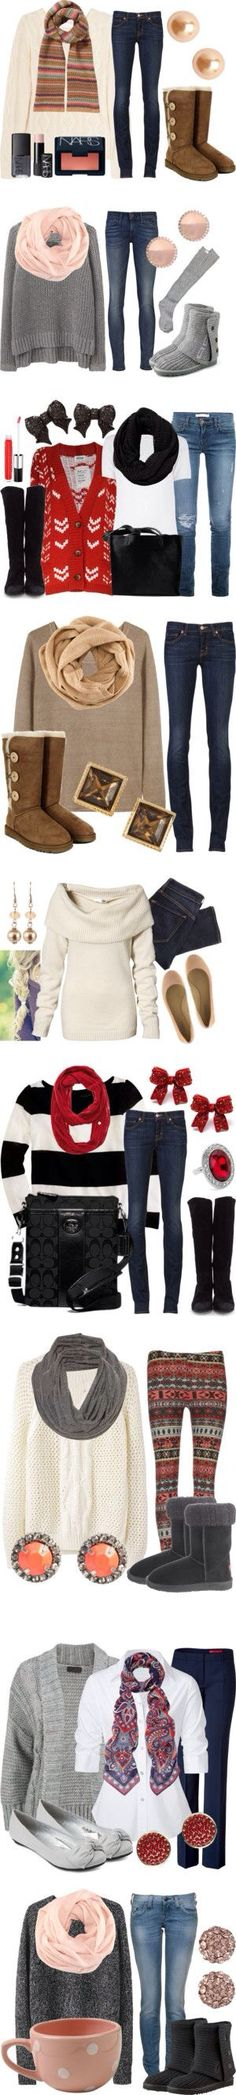 Casual and cute fashion for the cool autumn weather